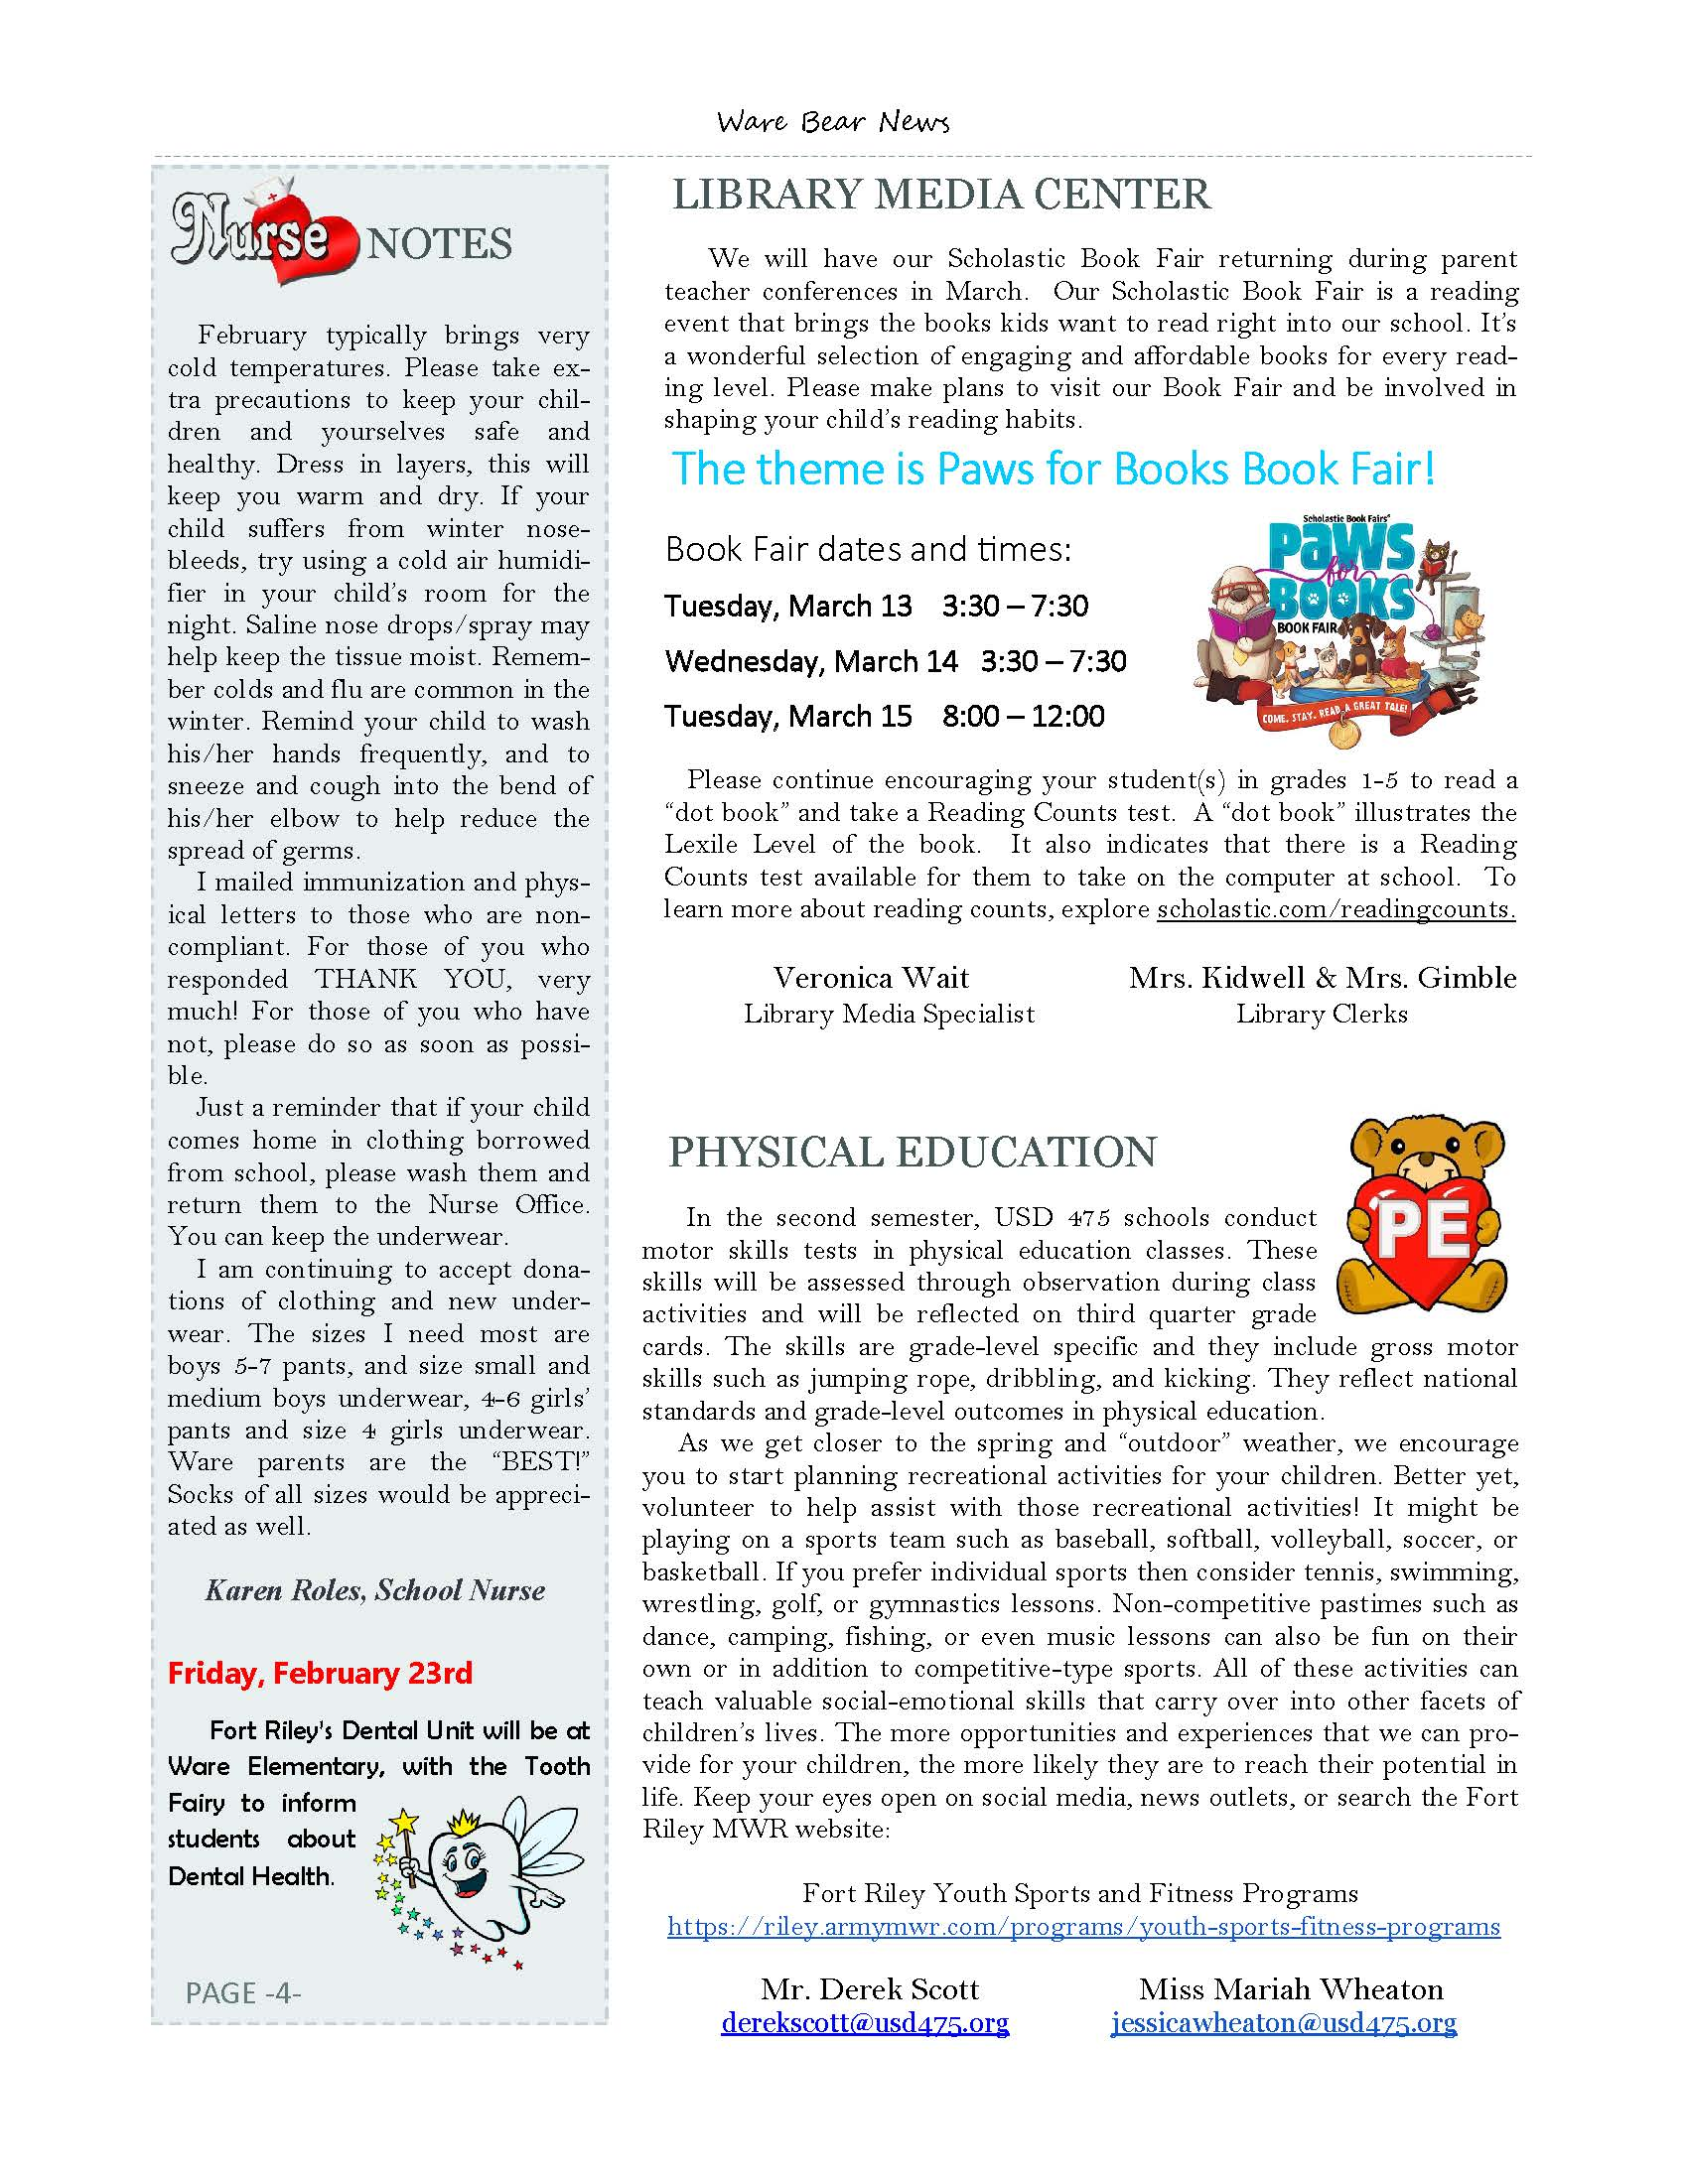 February eNewsletter Page 4